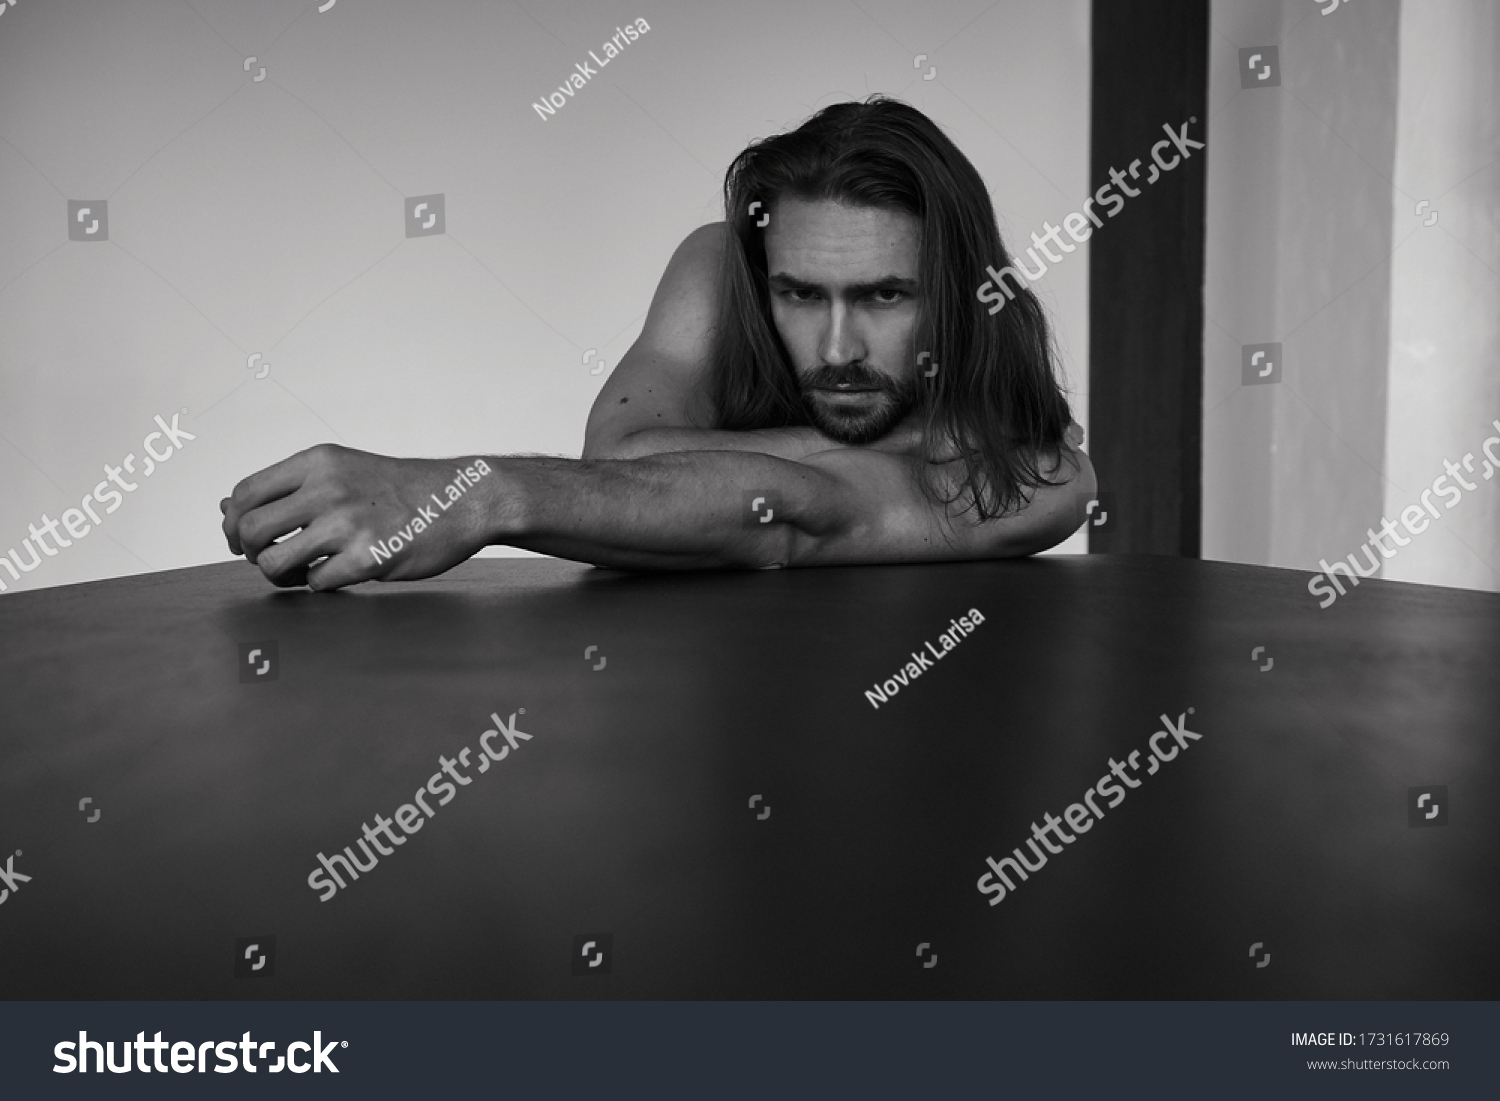 Handsome brutal man with beard and cool long hair.Sexy topless athletic body. Confident, attractive, stylish. Fashion shooting. Actor. Black and white #1731617869